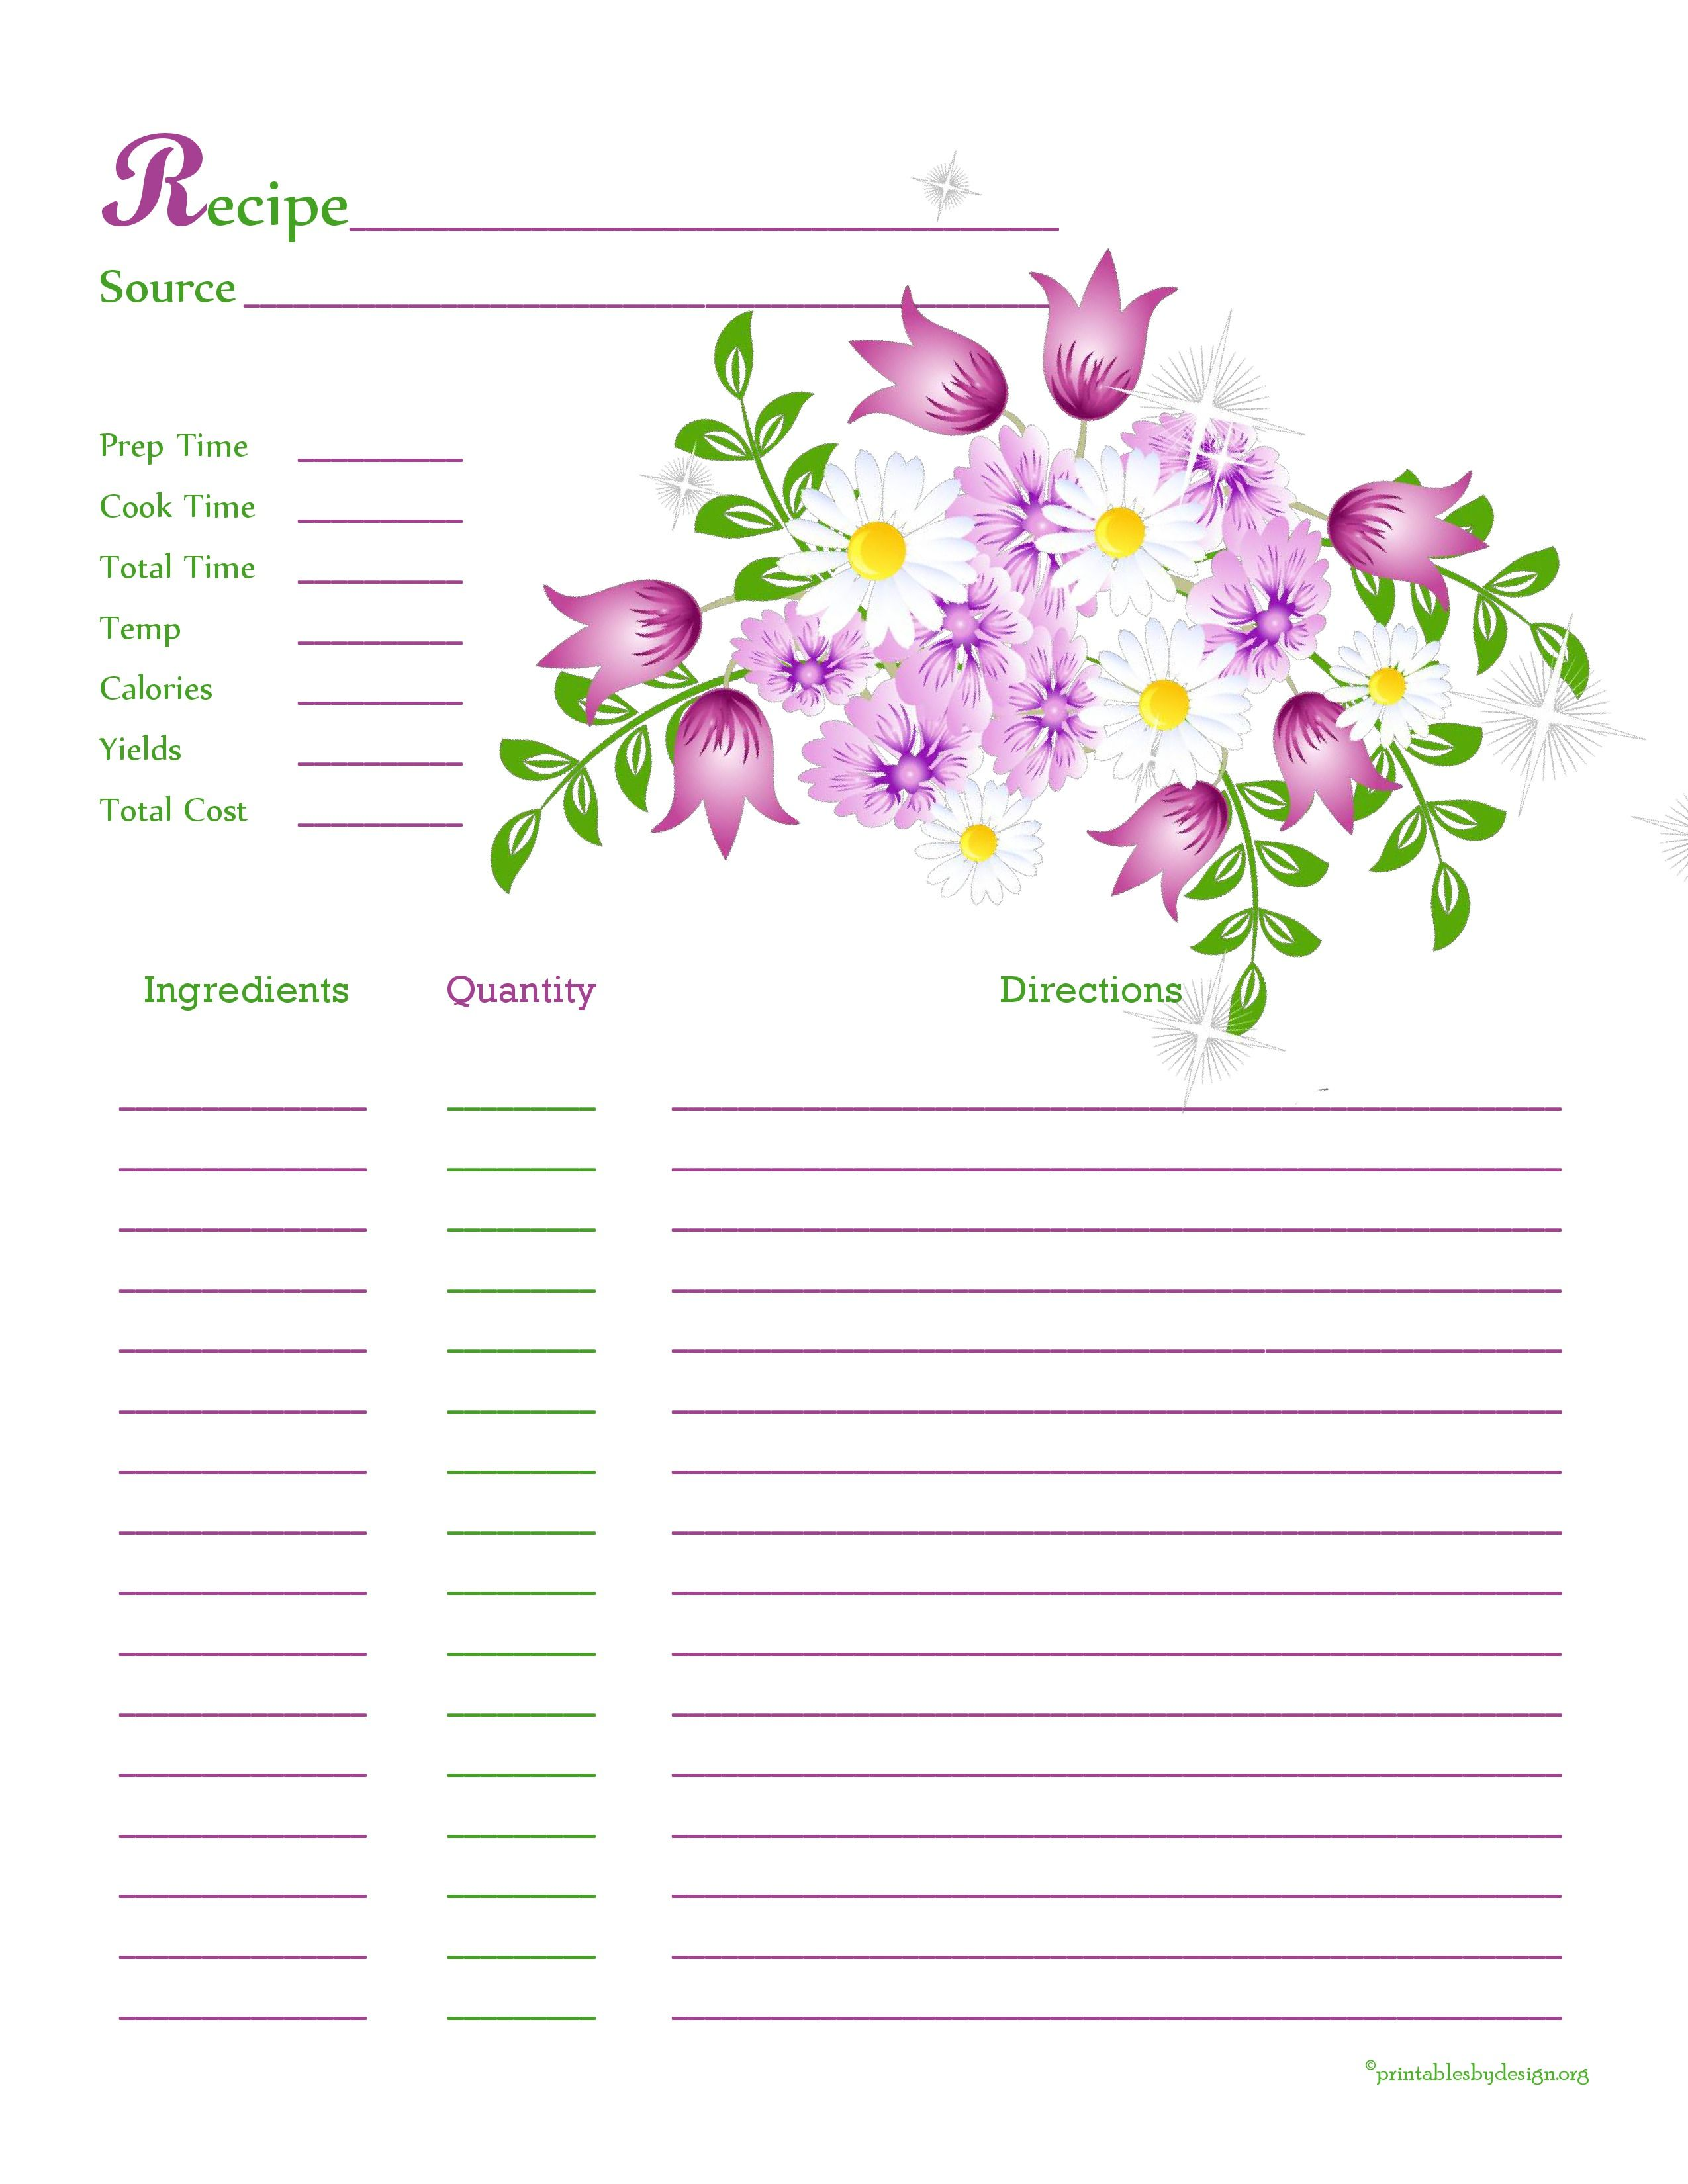 Free Printable Cactus Recipe Cards The Cards Are Editable In Adobe Reader Download Them At Ht Recipe Cards Printable Free Printable Recipe Cards Recipe Cards